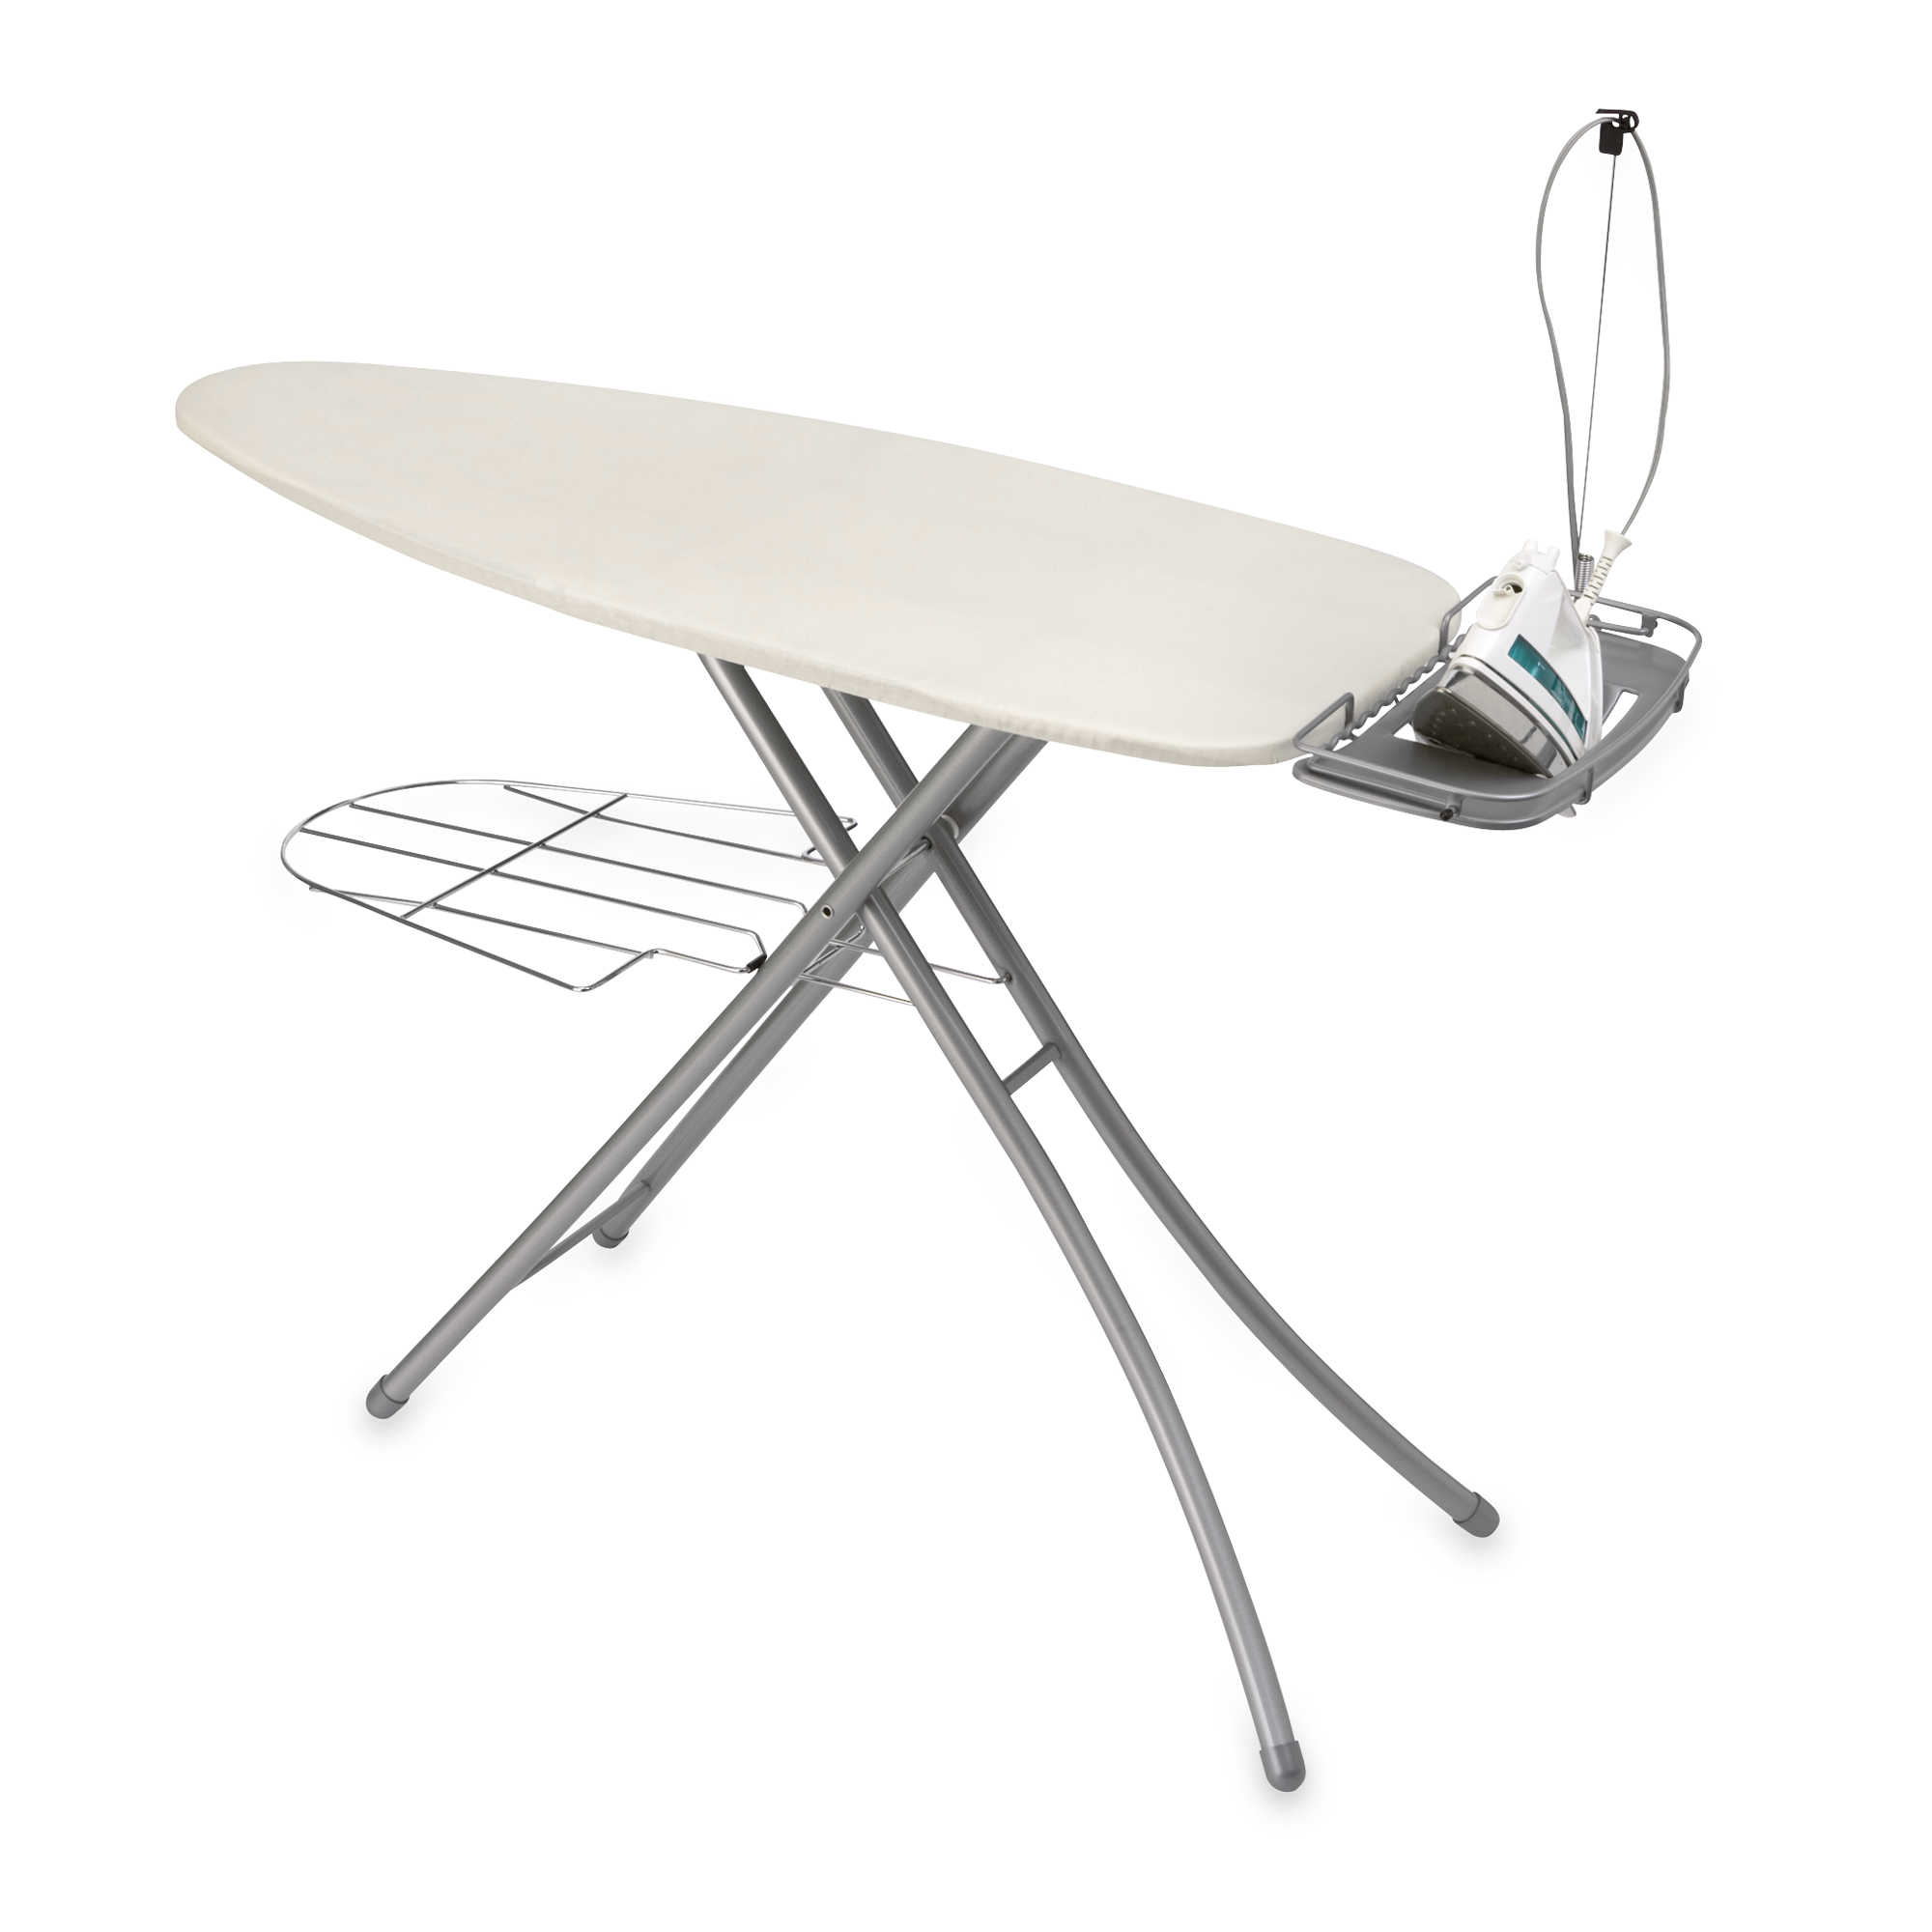 ironing board playset images